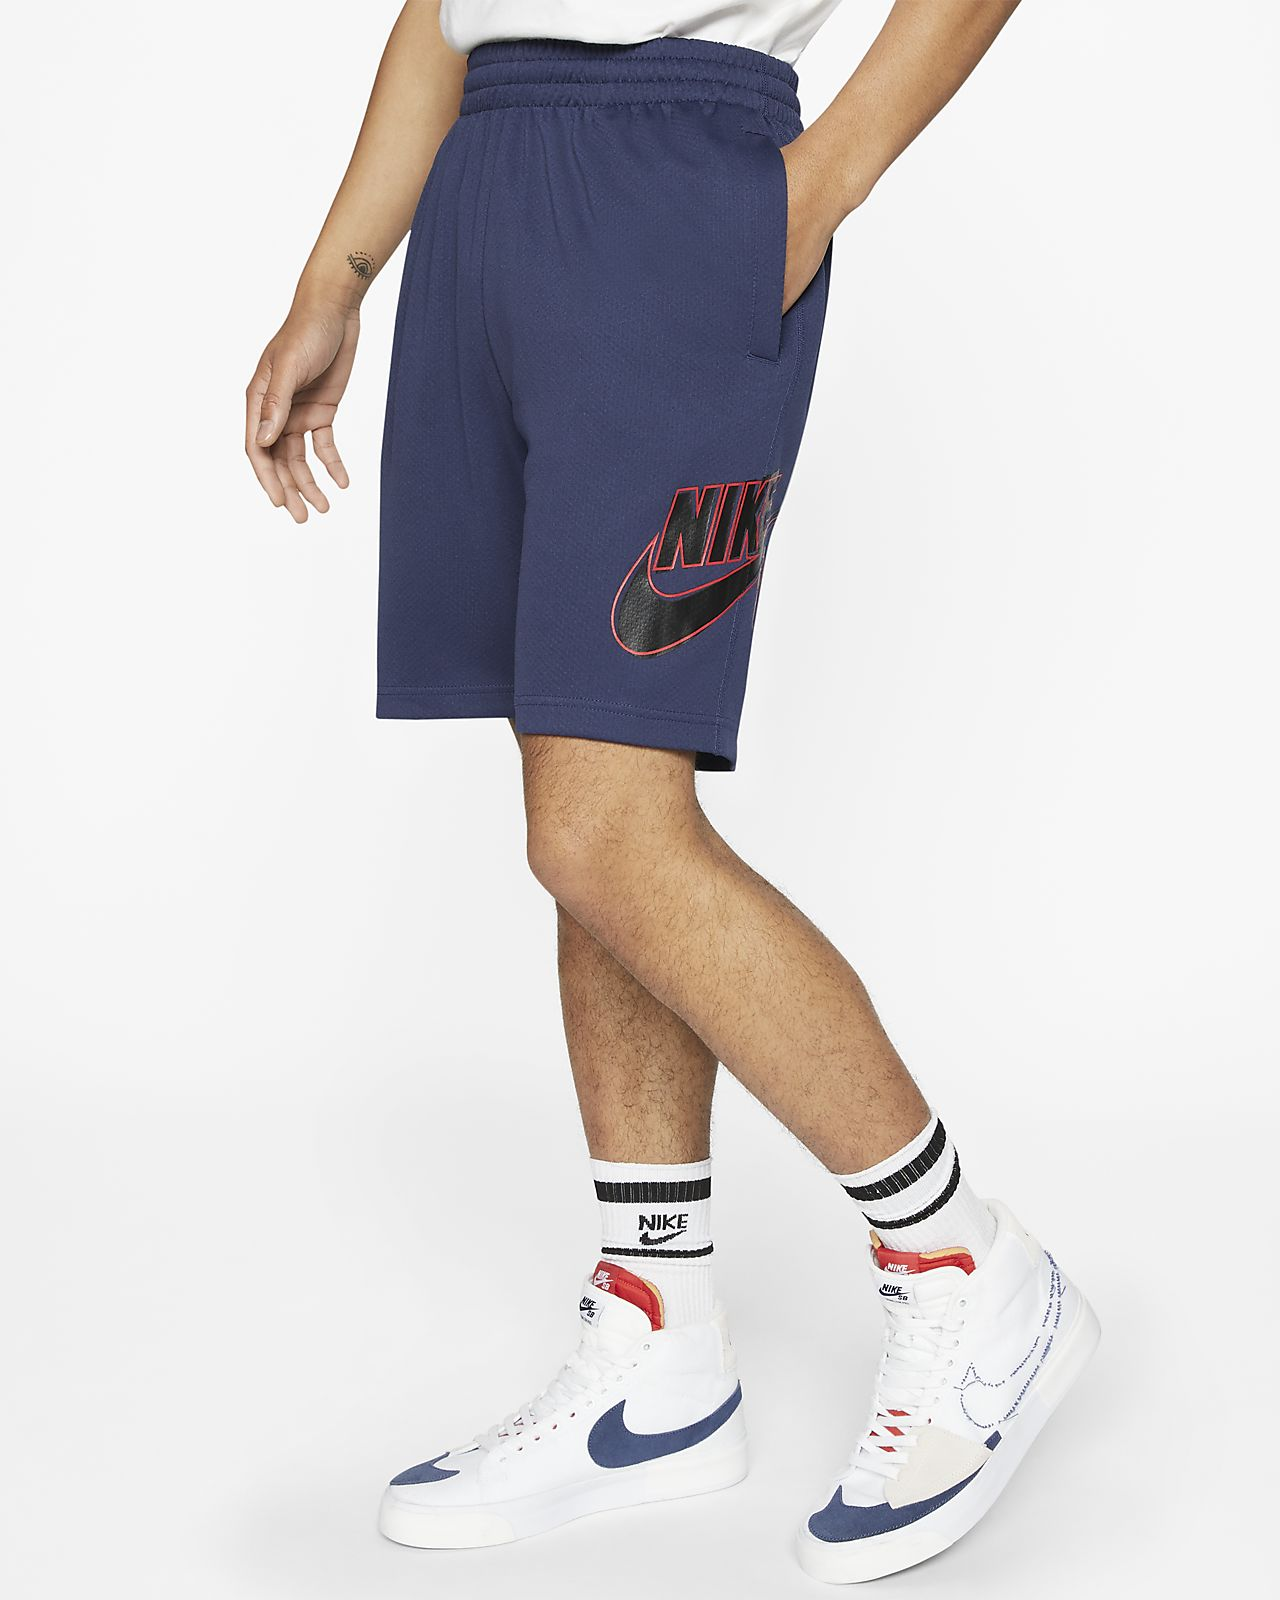 Nike SB Sunday Men's Graphic Skate Shorts